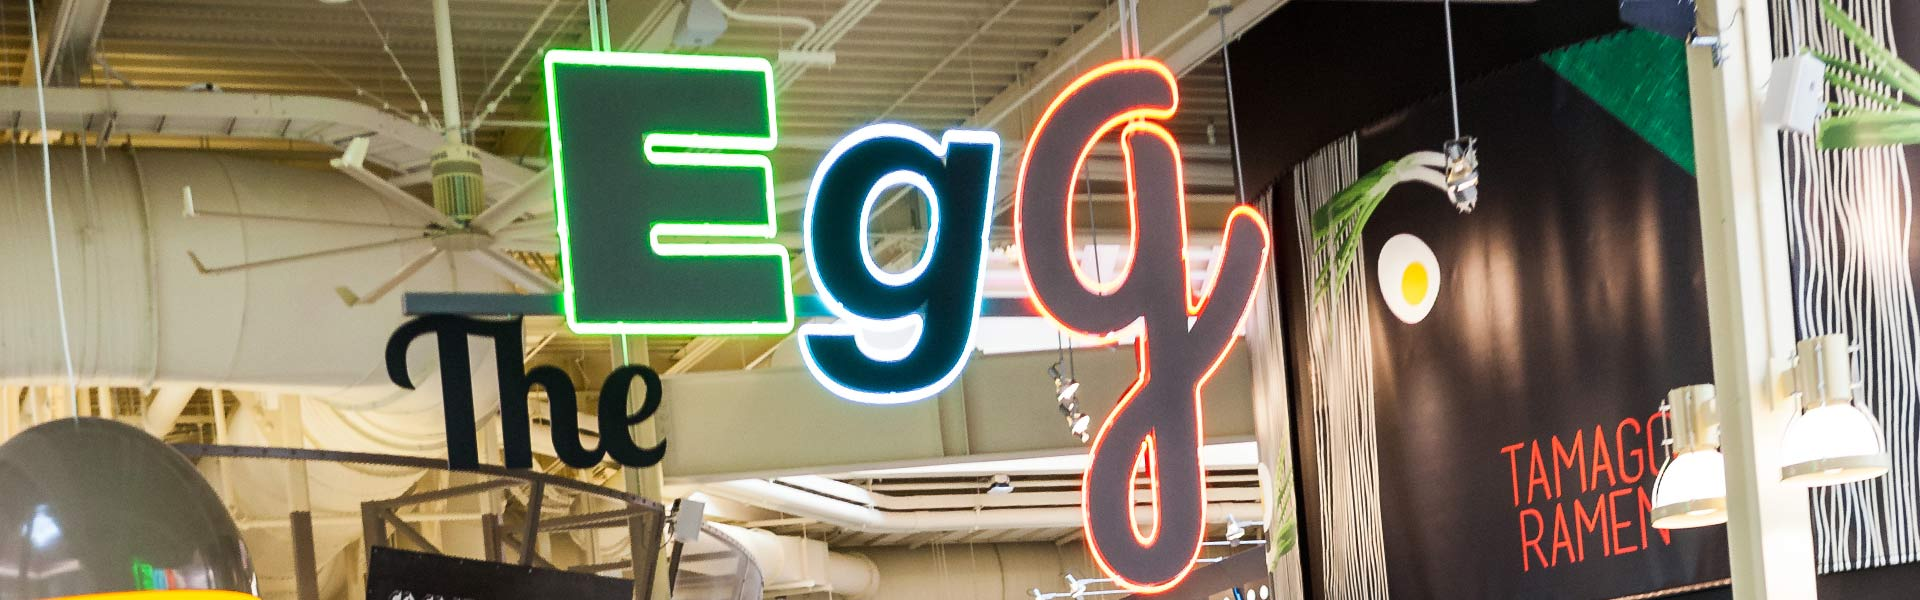 Colorful logo of The Egg